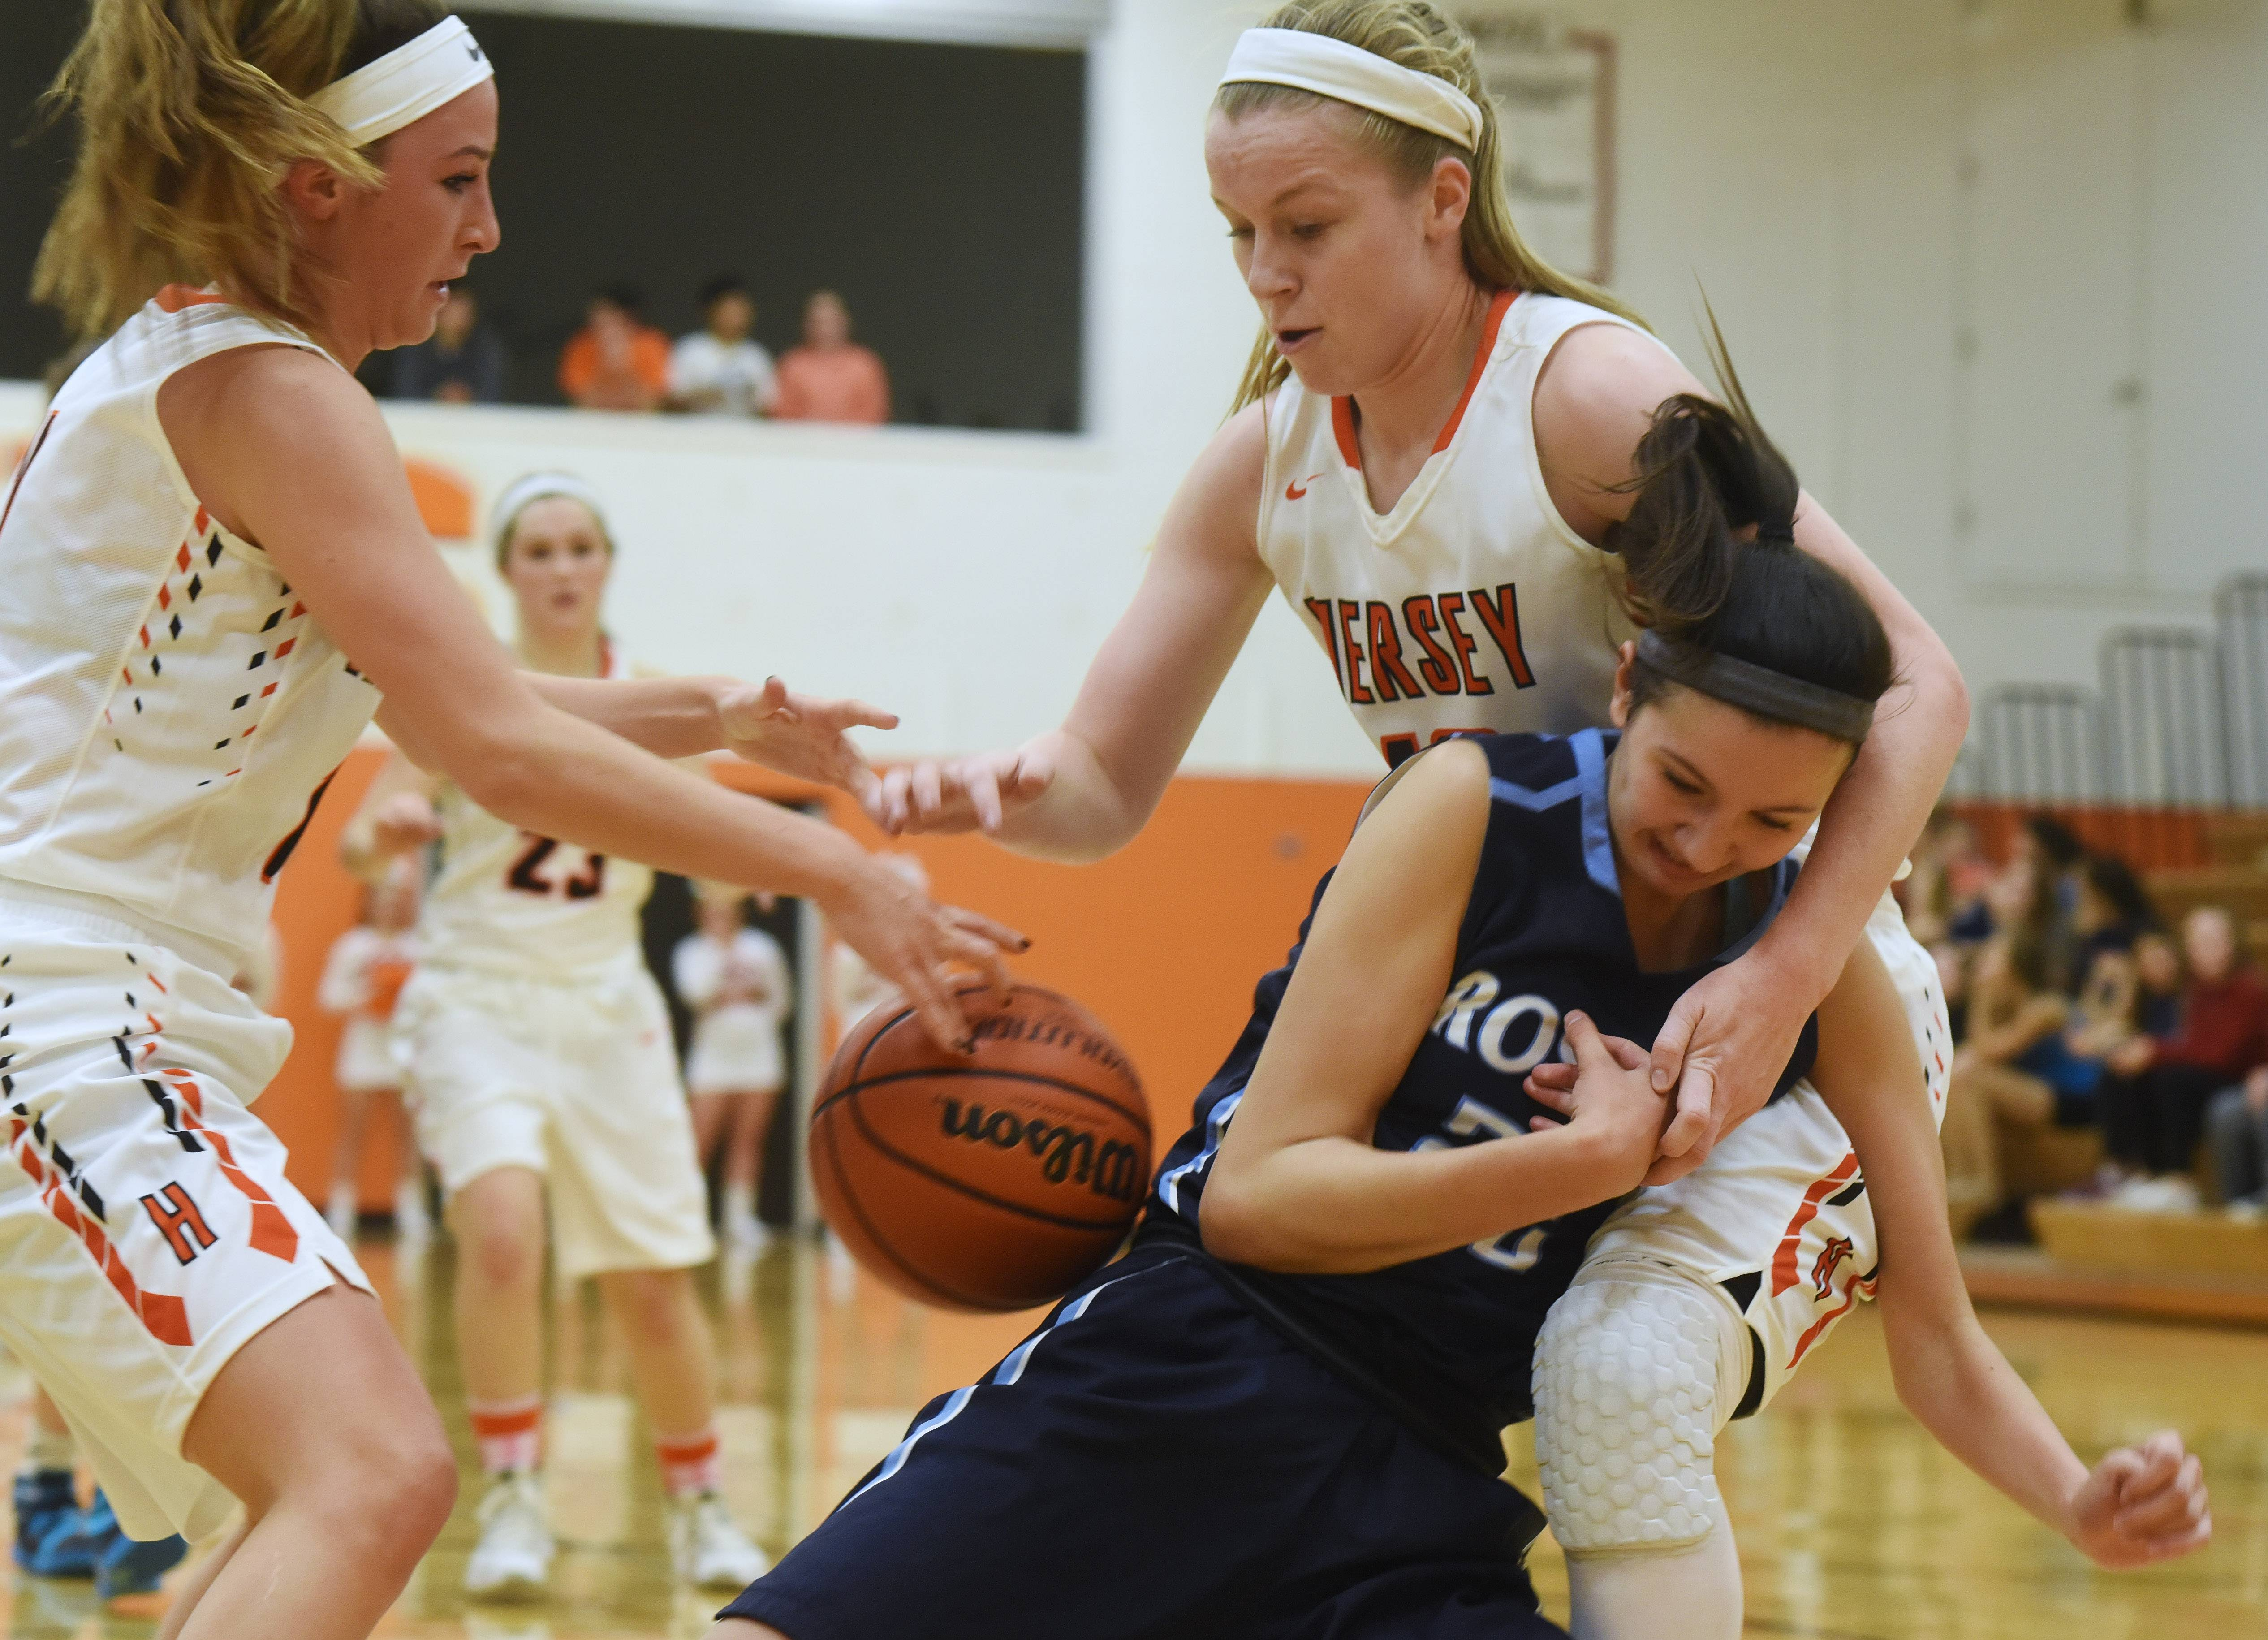 Prospect's Emily Frasco is becoming accustomed to attention from MSL East defenders. Here, Hersey's Carly Cooper, left, and Claire Gritt team up against Frasco last season.